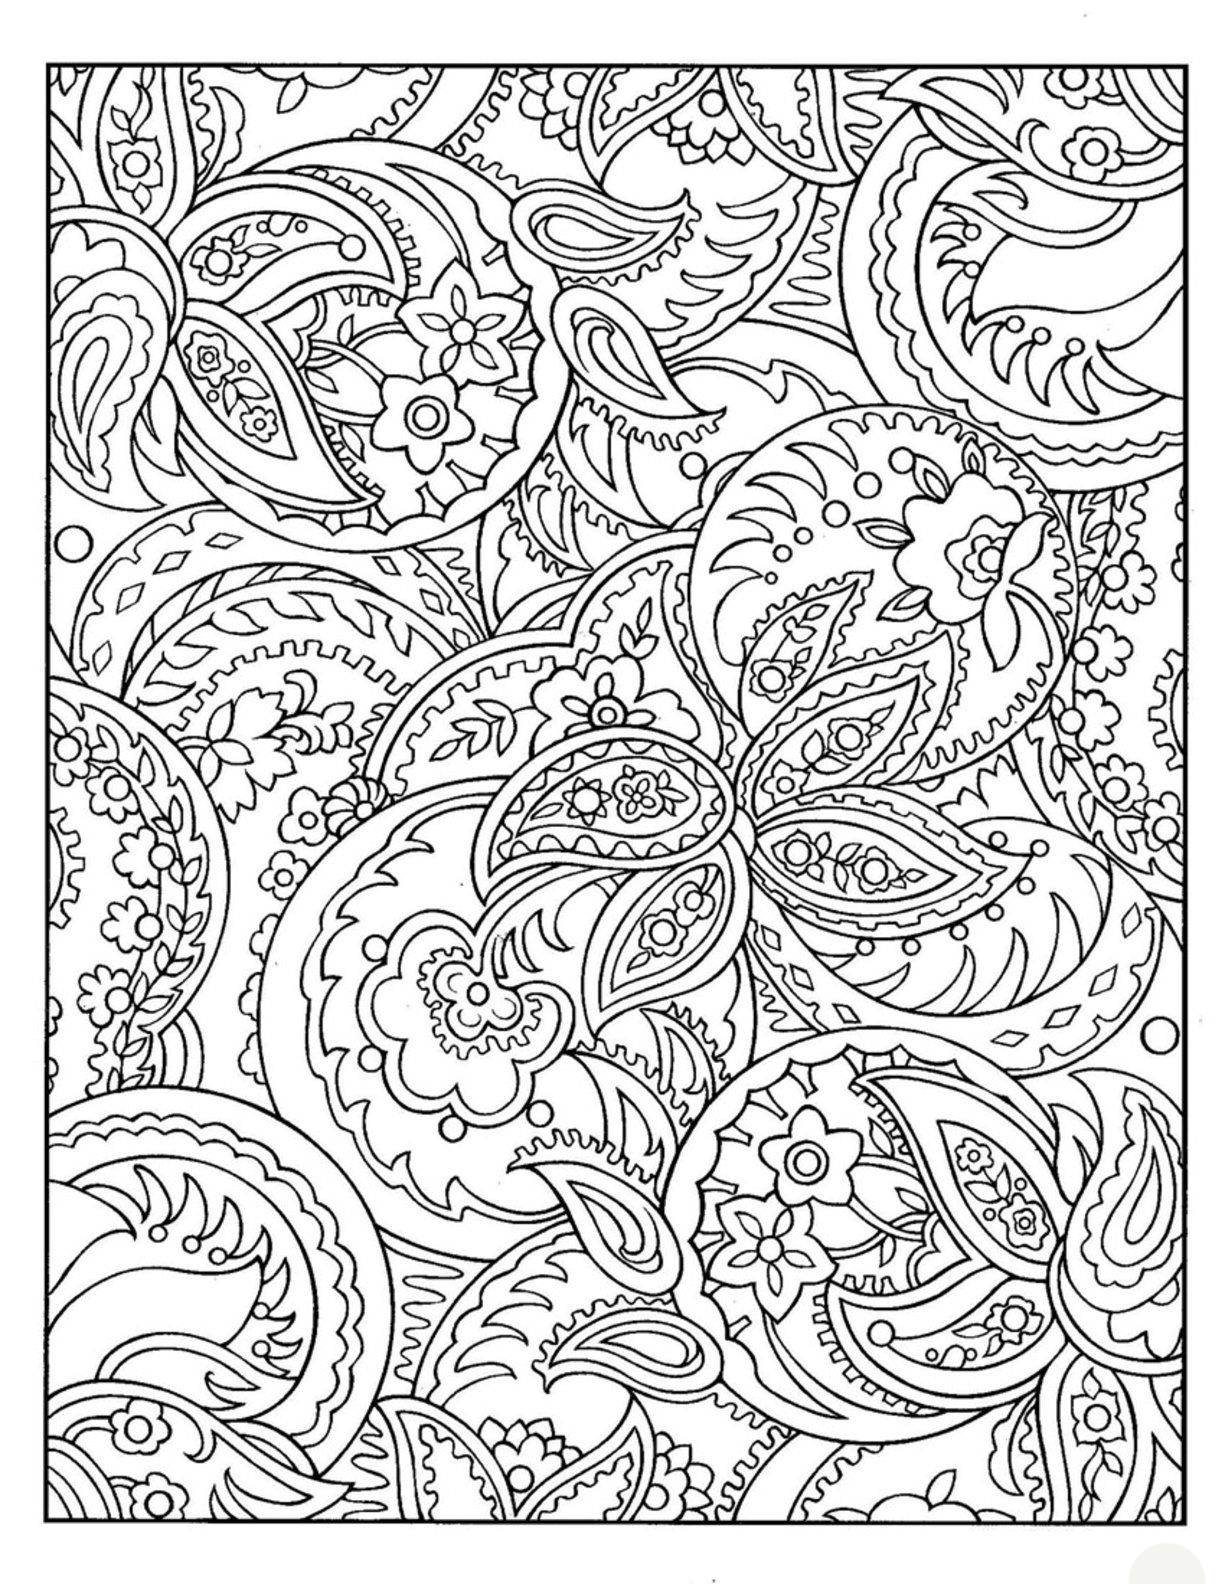 design pictures to color get this easy awesome coloring pages for preschoolers 8ps18 to color pictures design